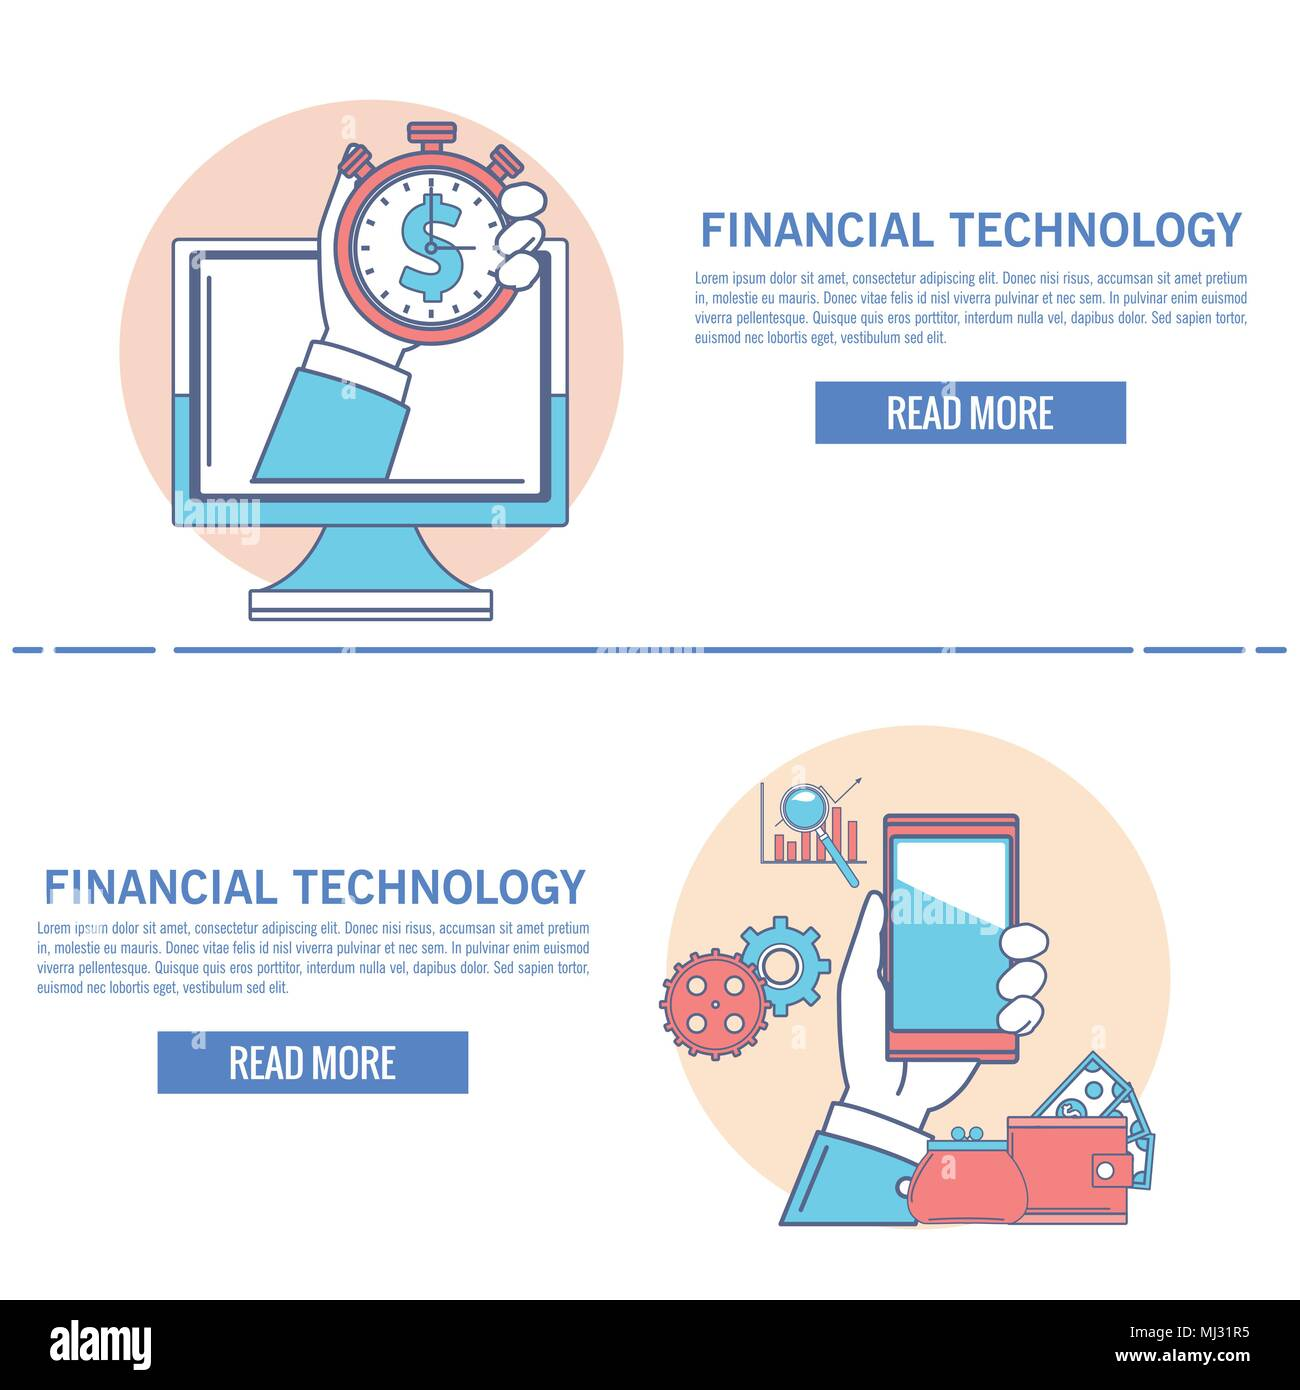 Financial technology infographic - Stock Image